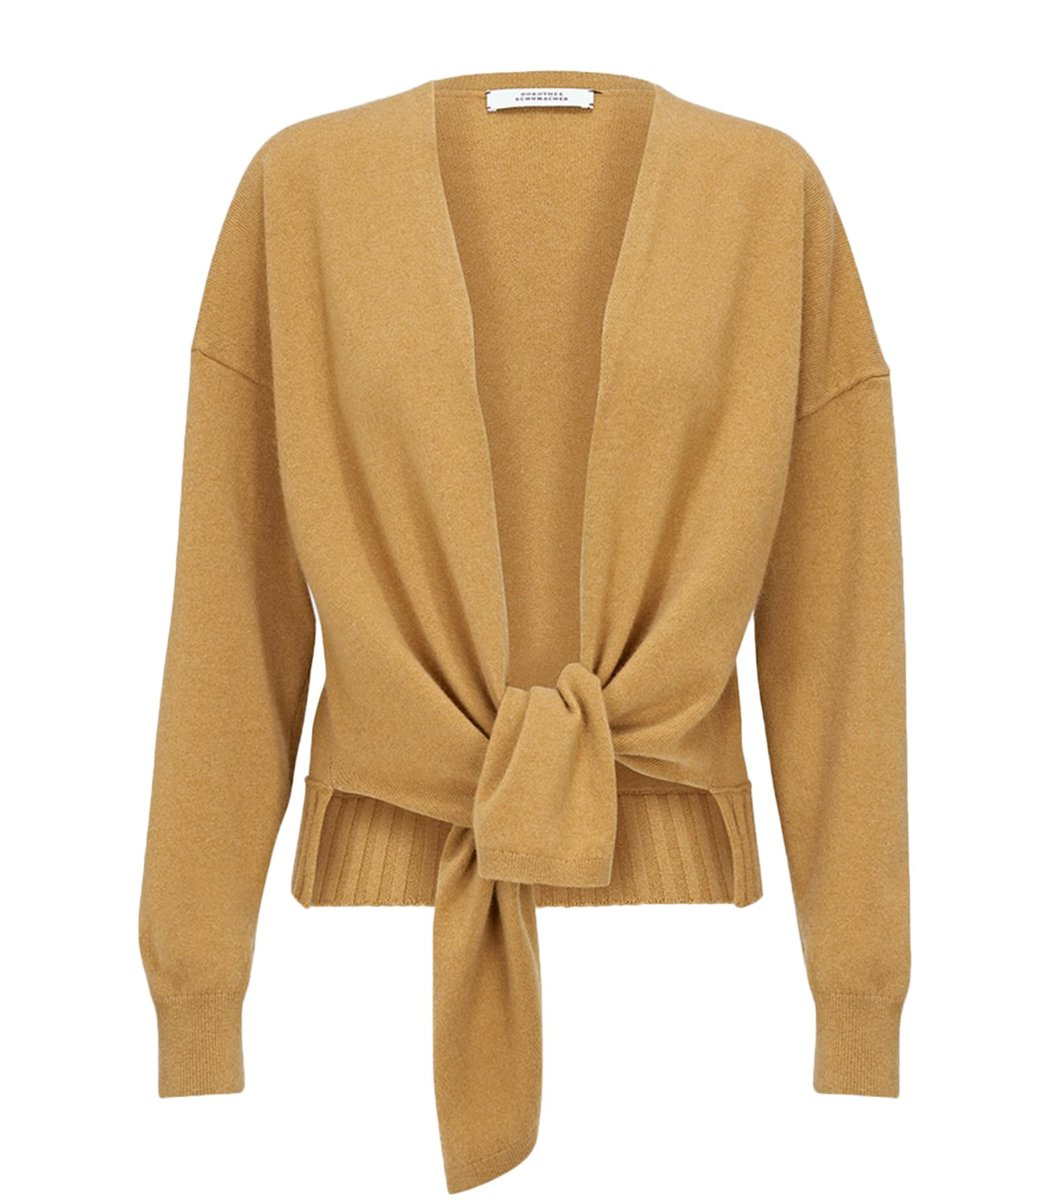 Dorothee Schumacher Cardigans Sophisticated Softness Cardigan in Soft Curry